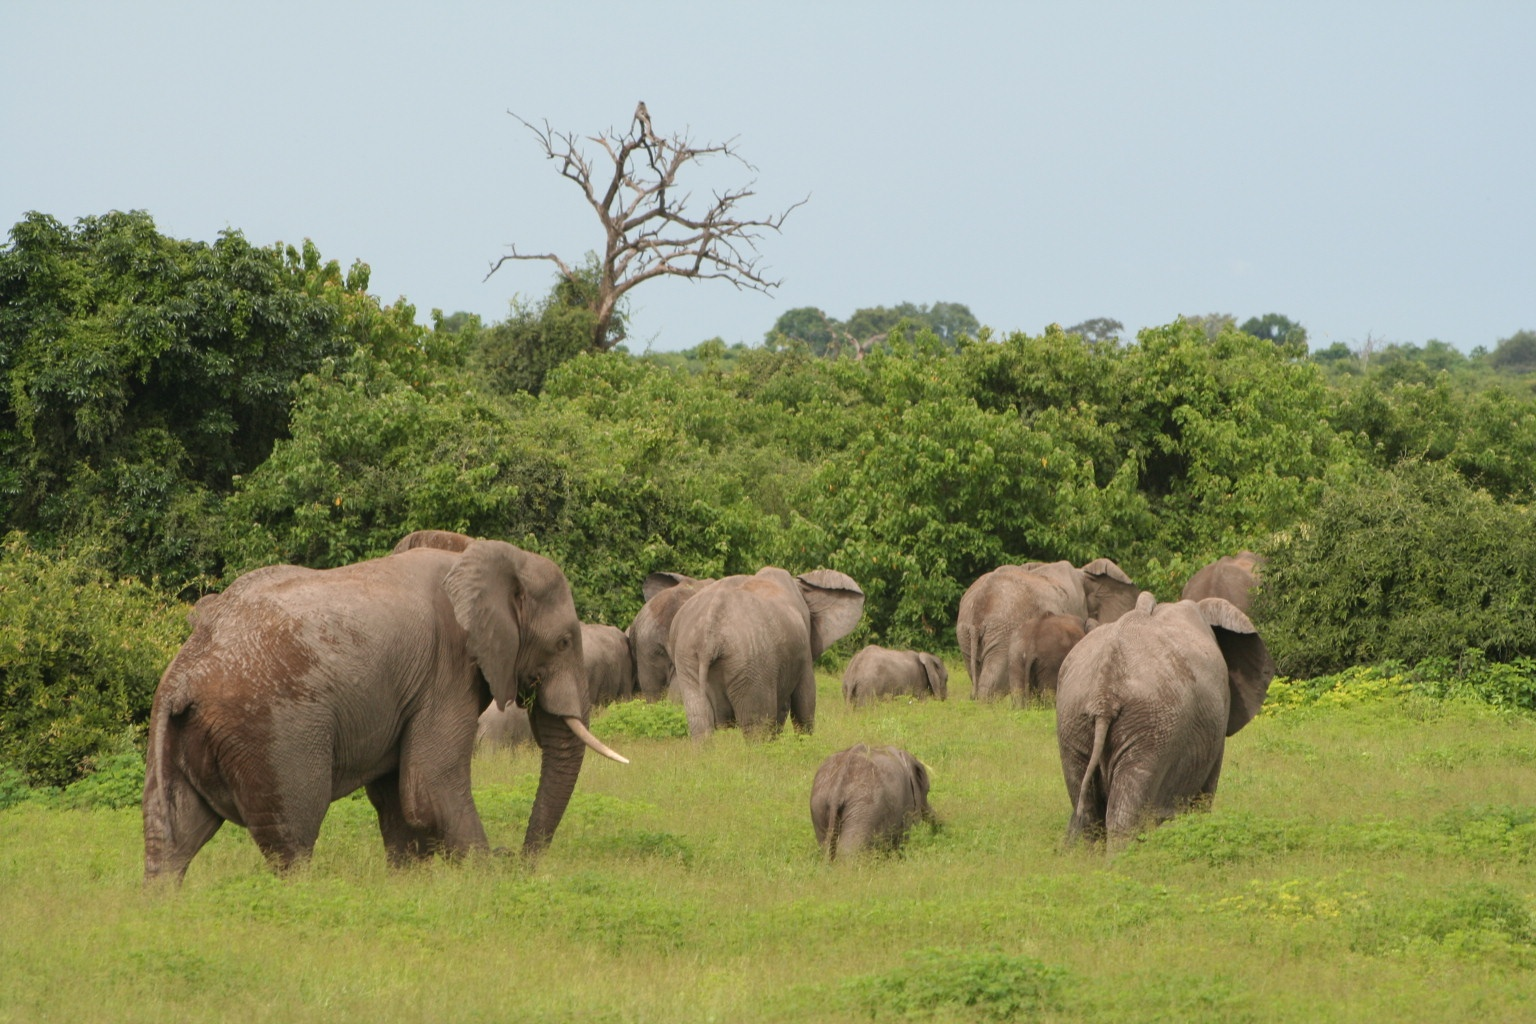 Thousands of elephants in Chobe